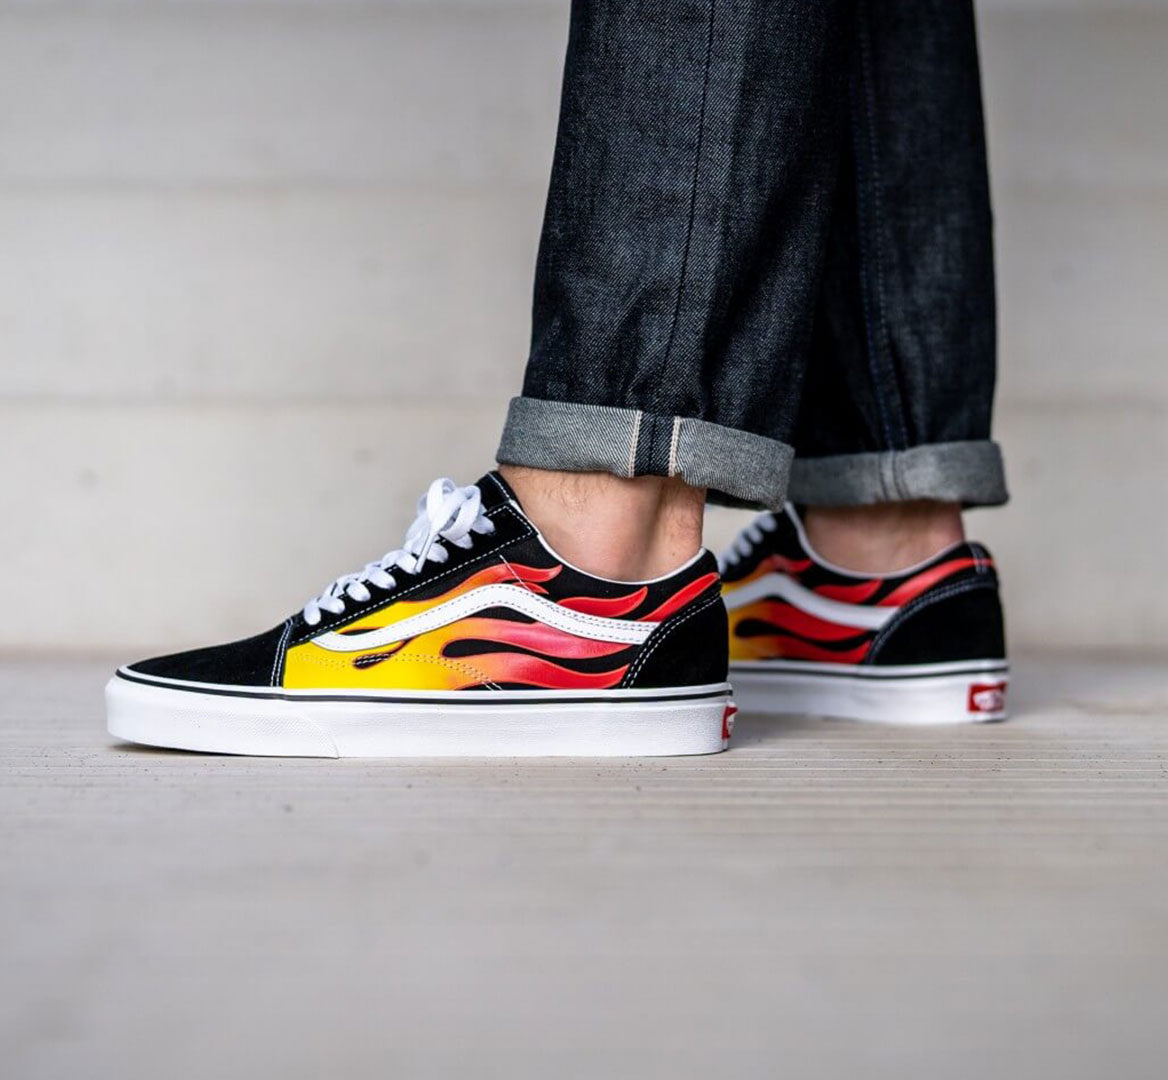 15 of the Best Vans Shoes // ONE37pm